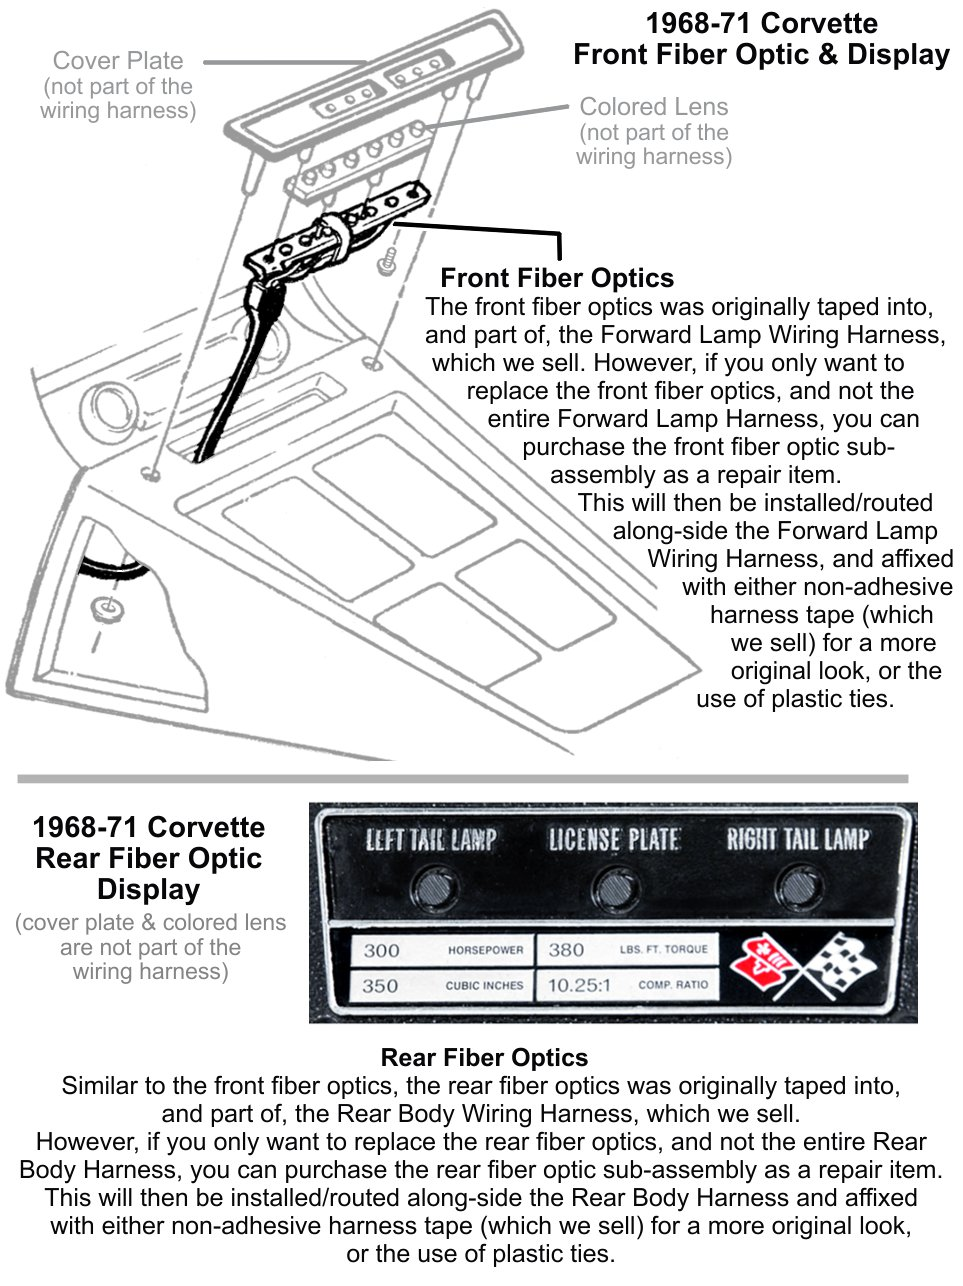 Fiber Optic Repair Components (1968-71 Corvette)